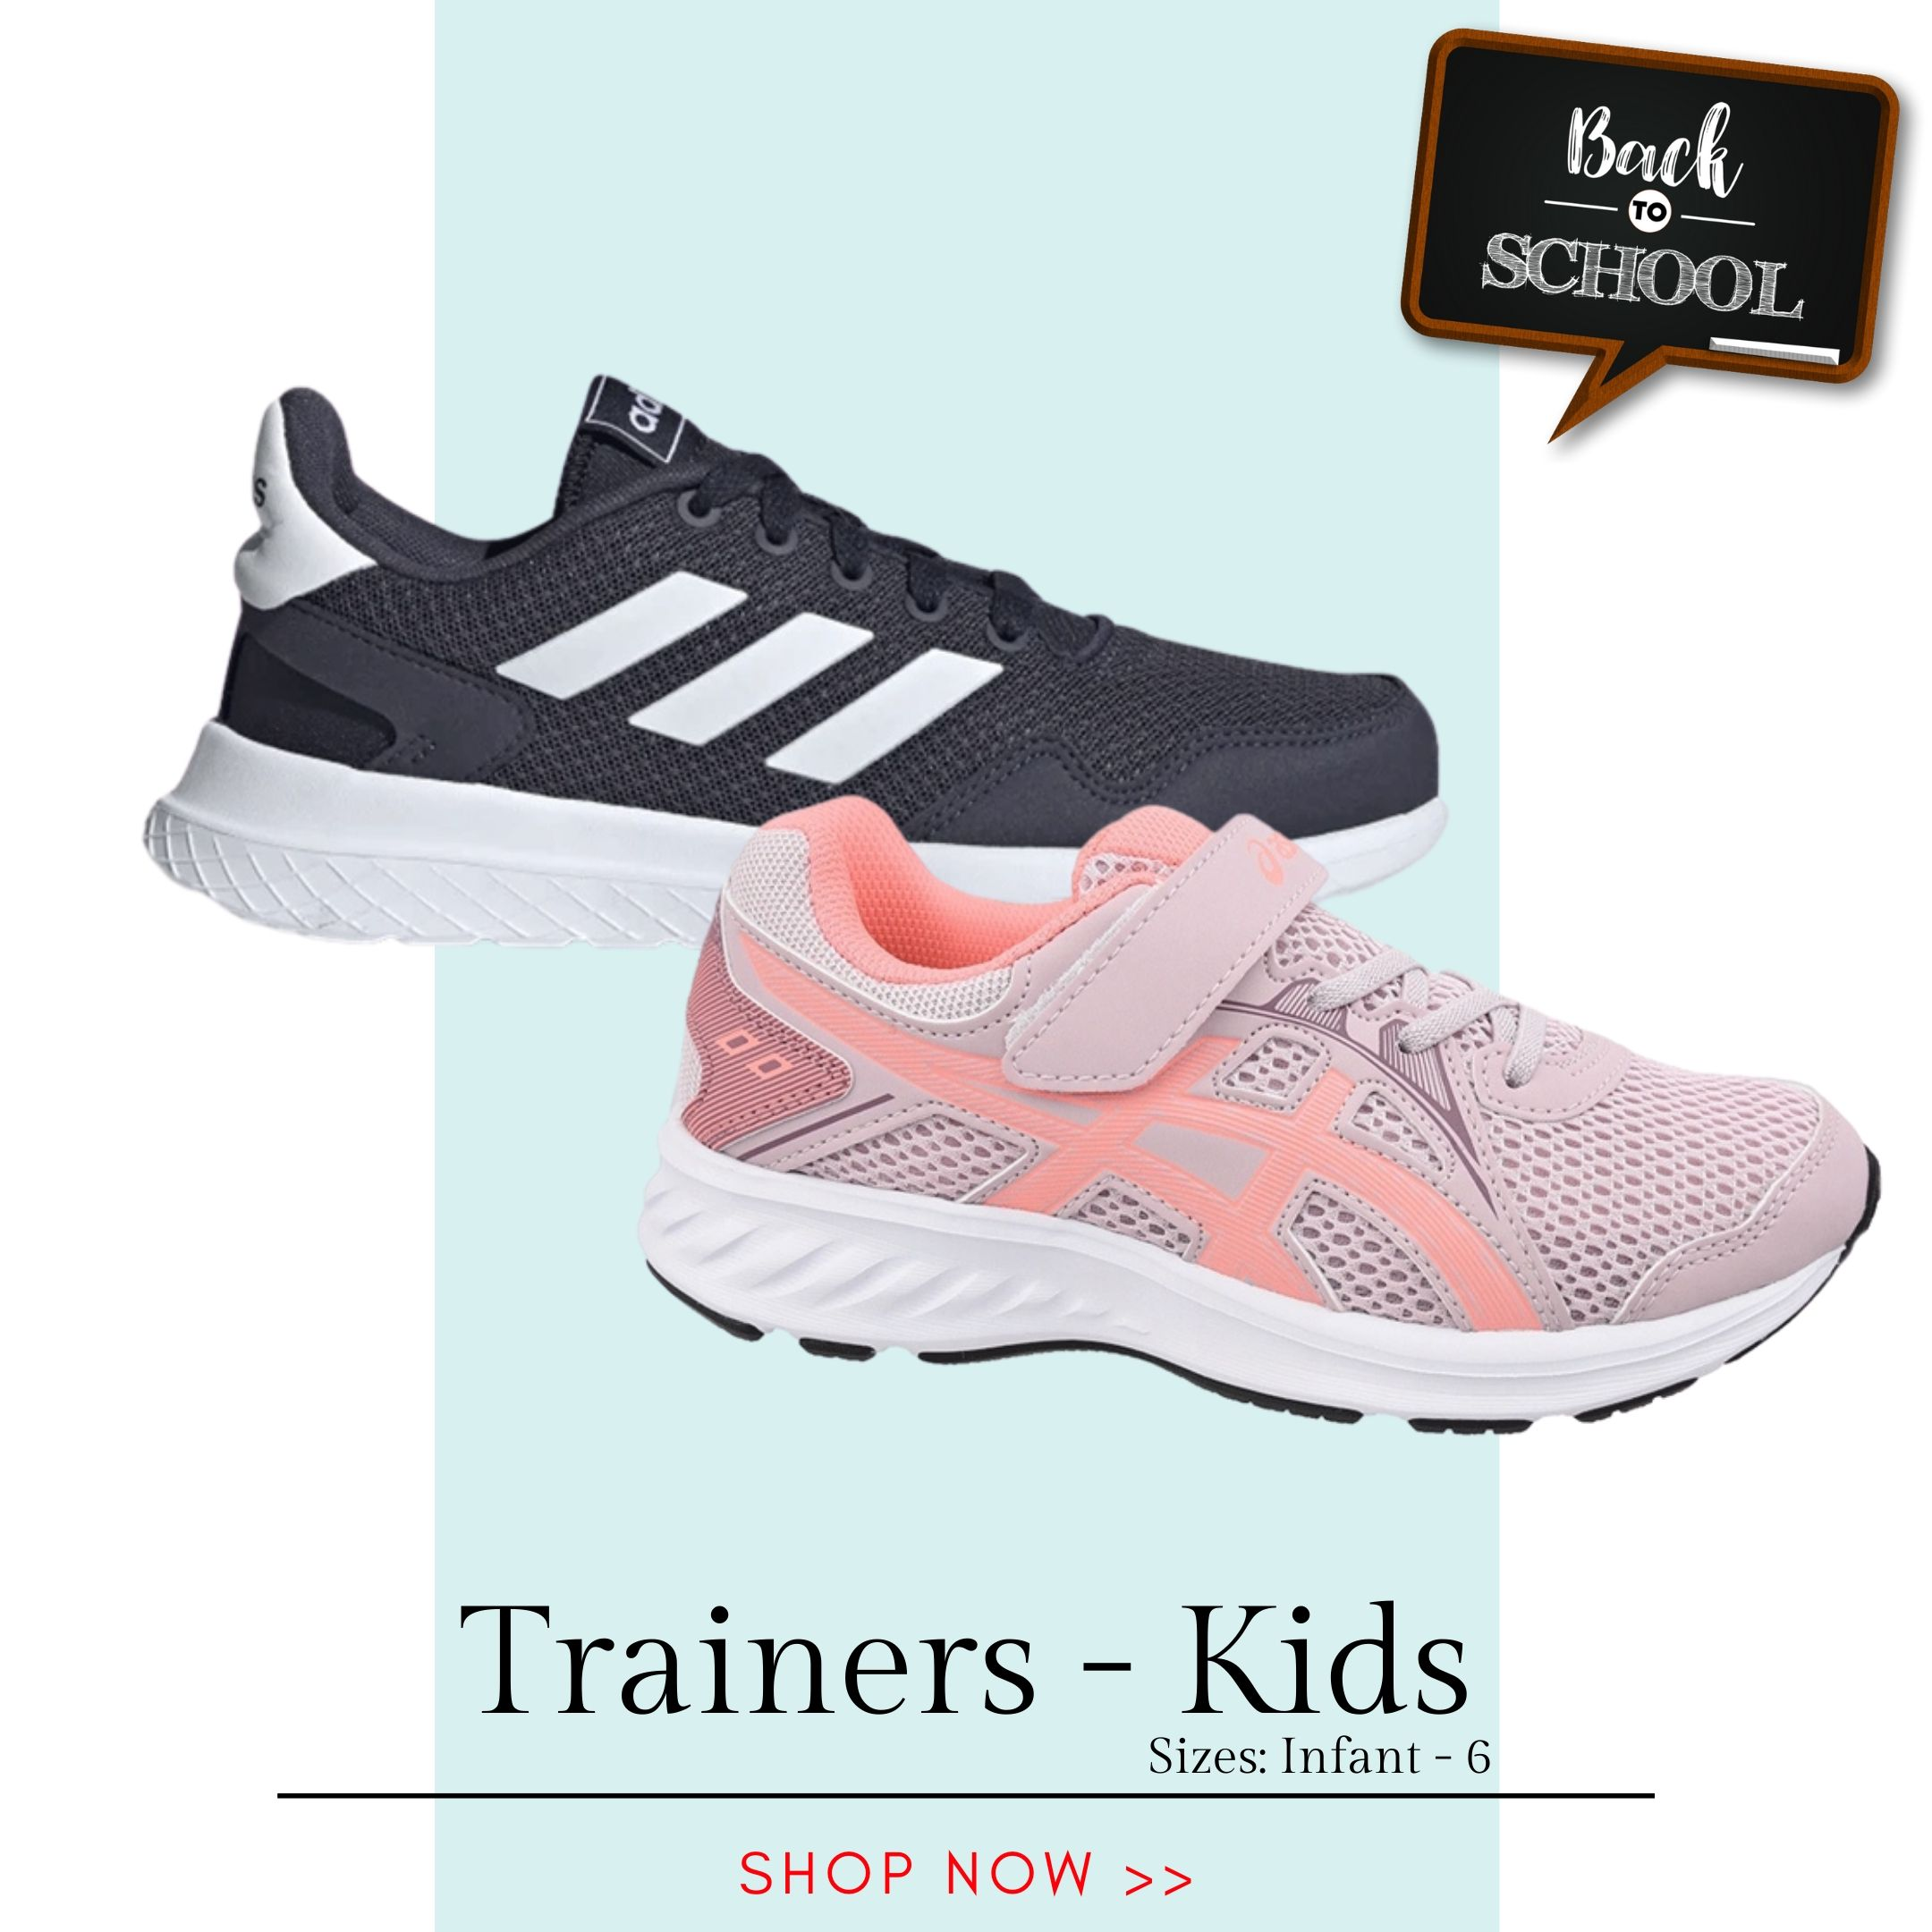 Back to School - Trainers Kids